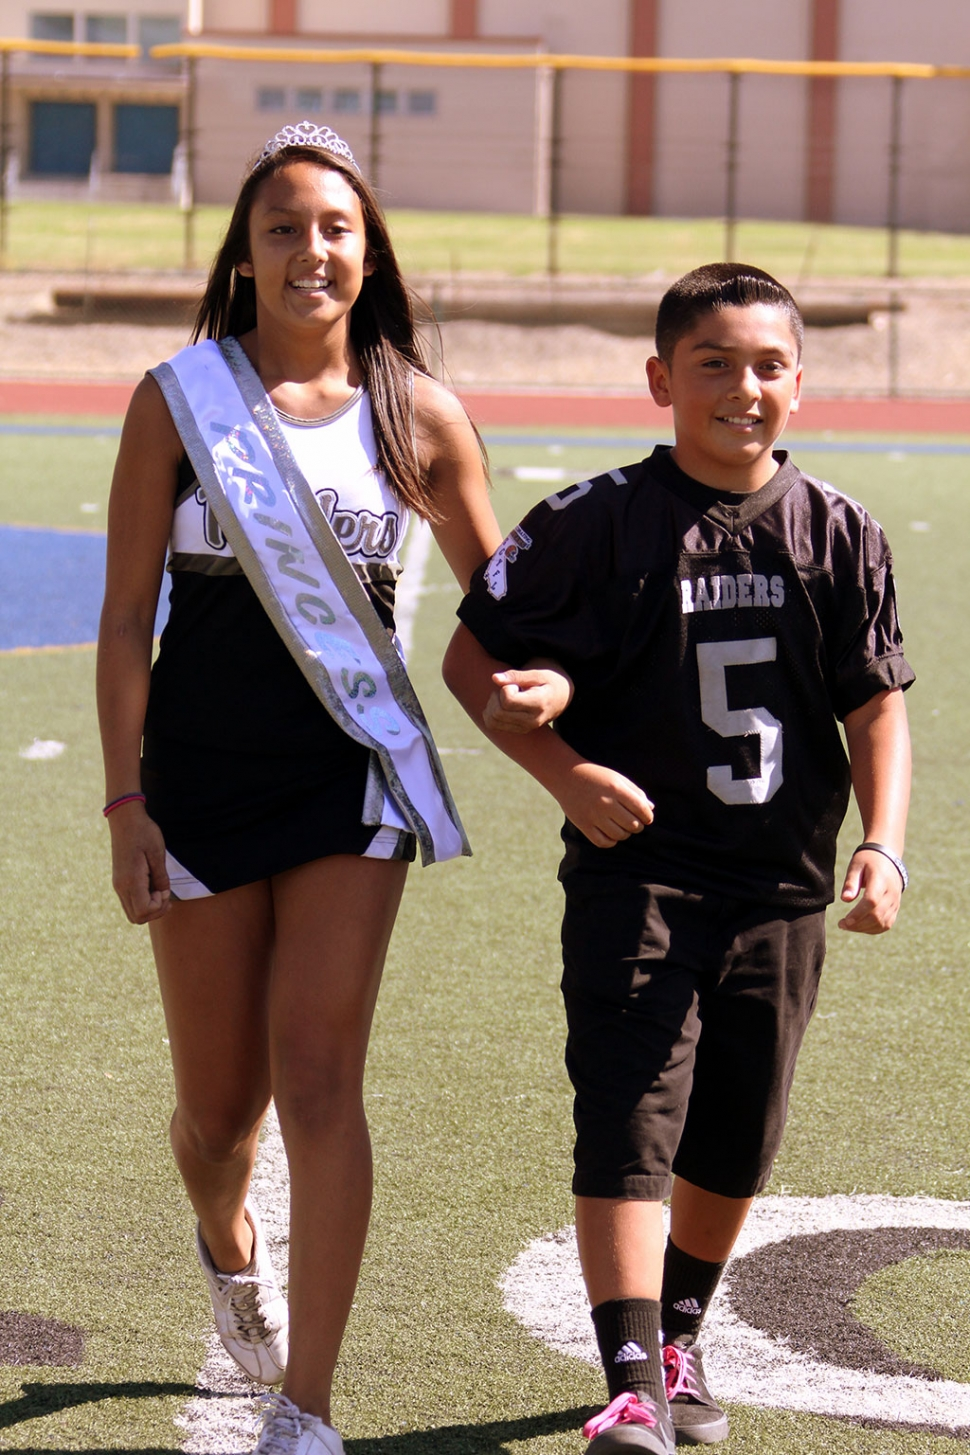 Homecoming Princess 1 and her escort